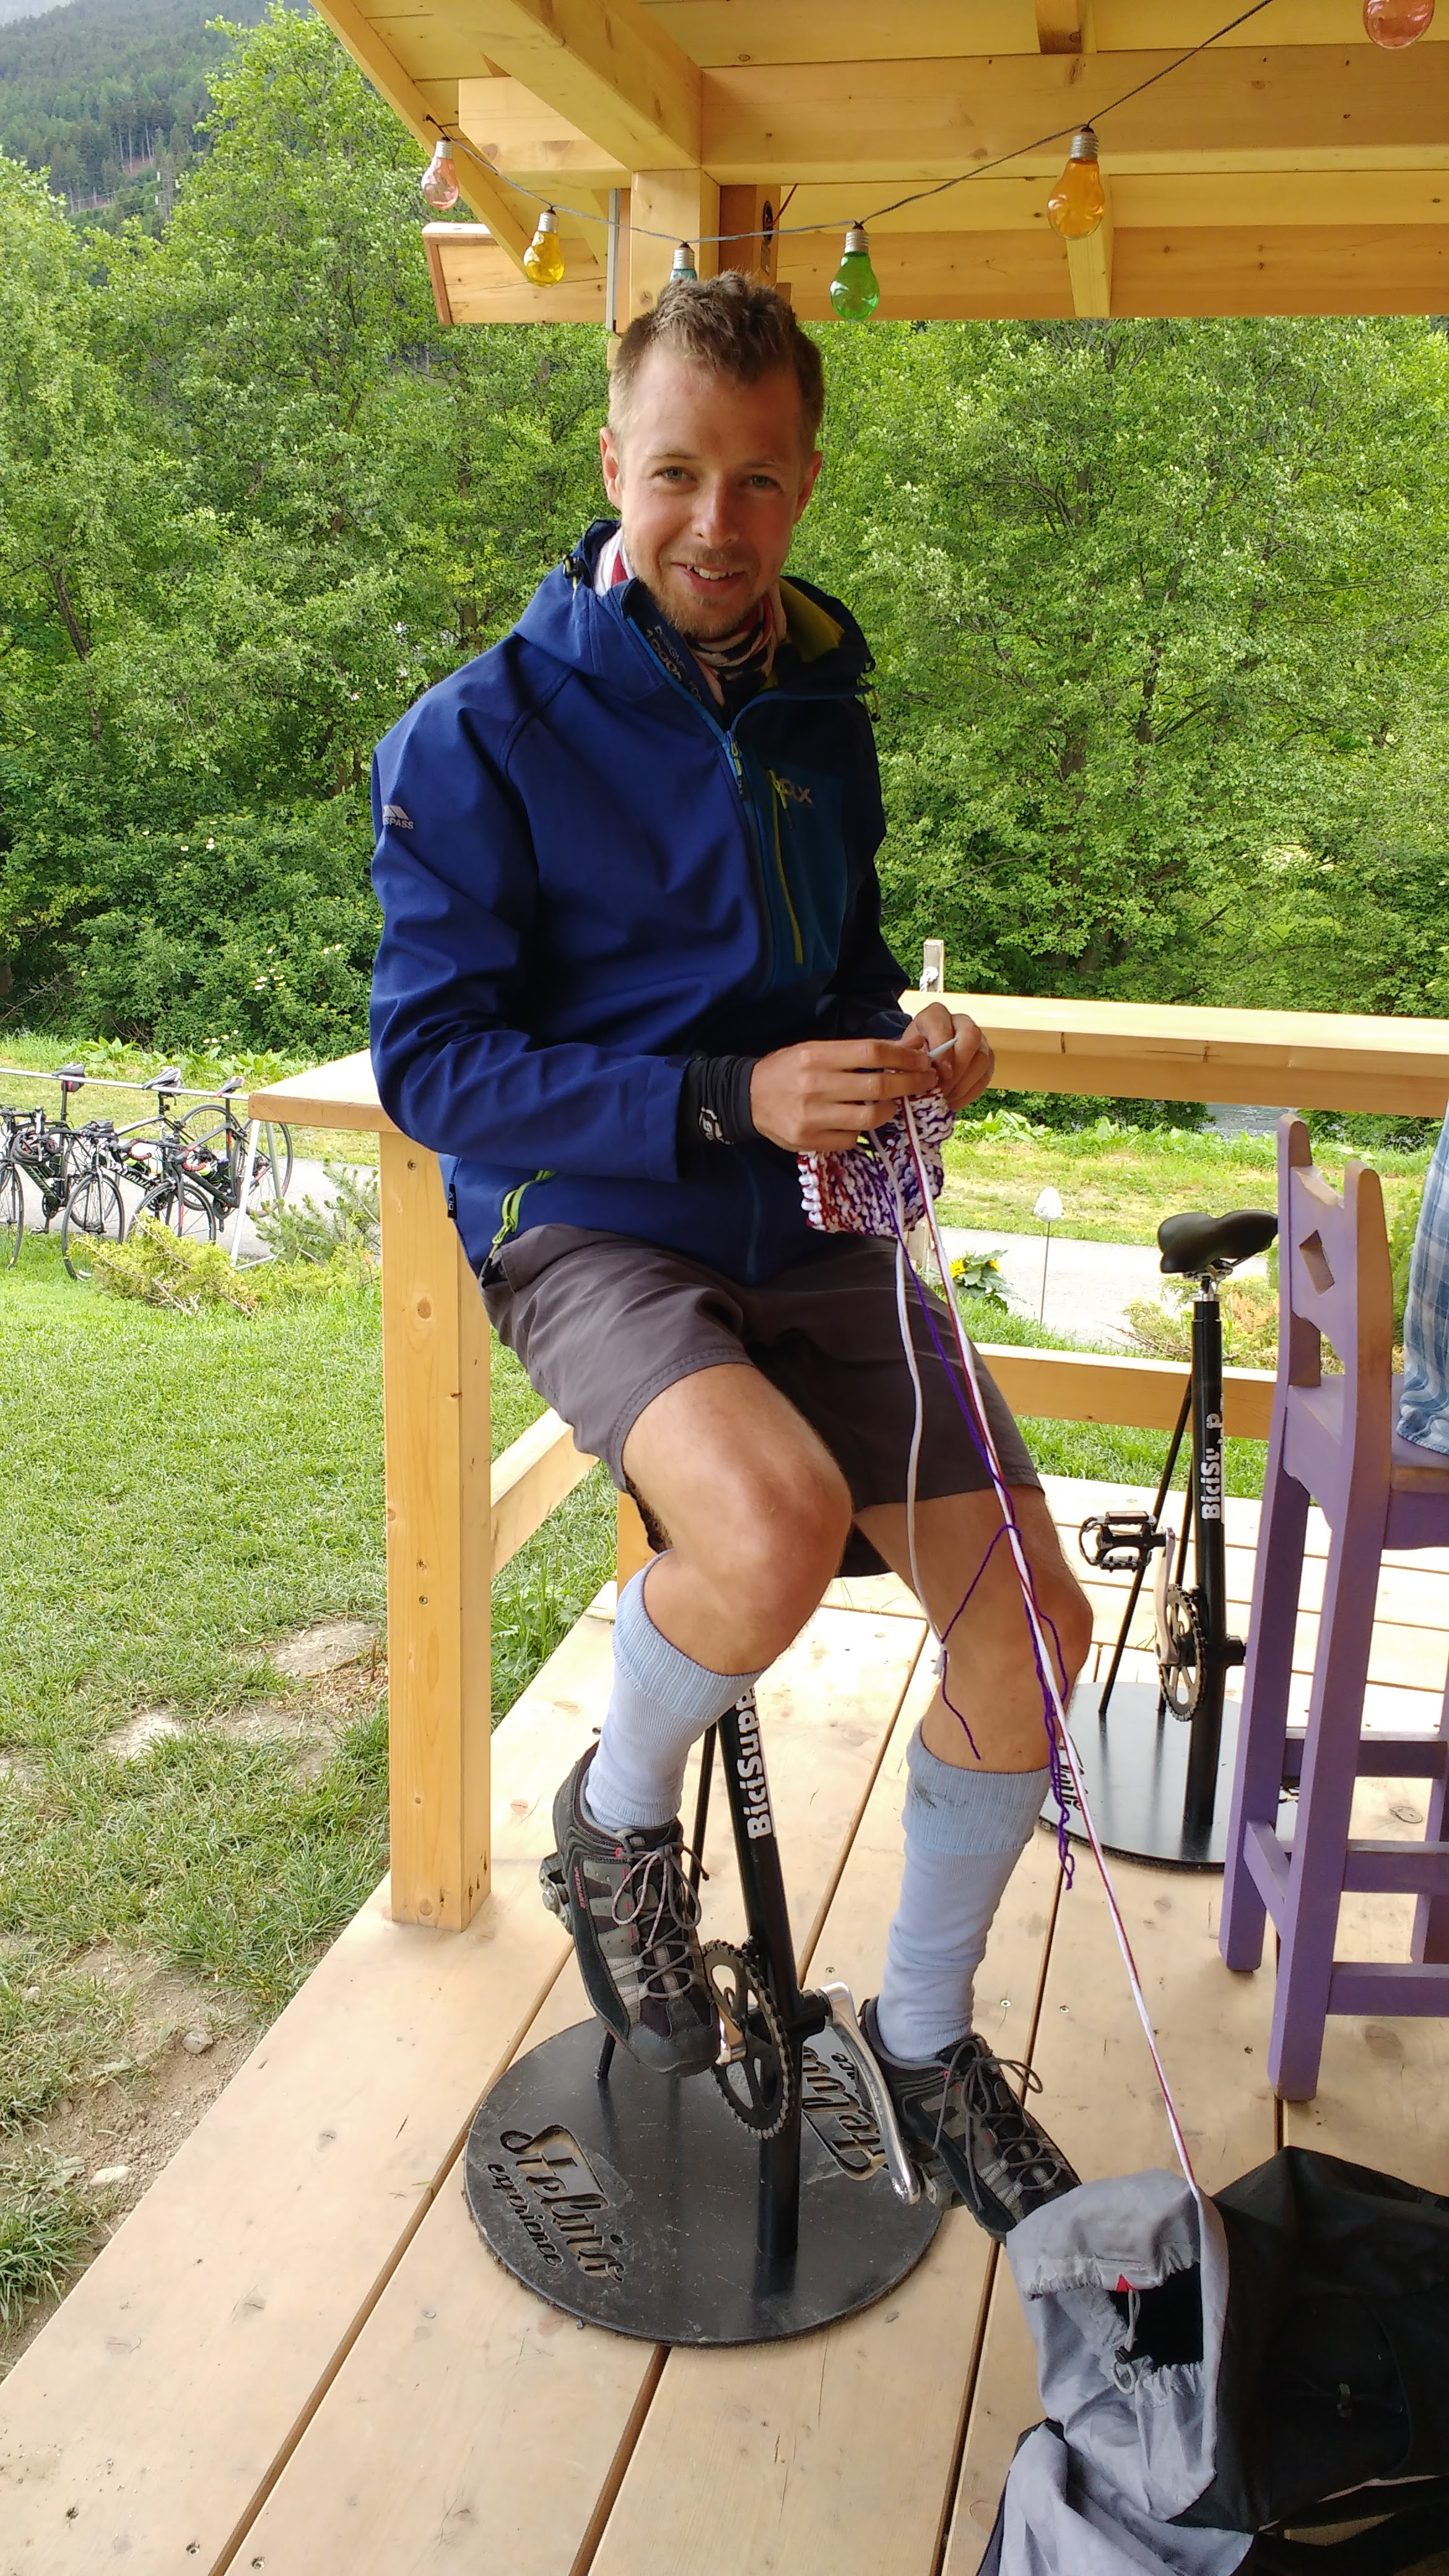 Bikes and knitting - finally, Peter's hobby's are combined